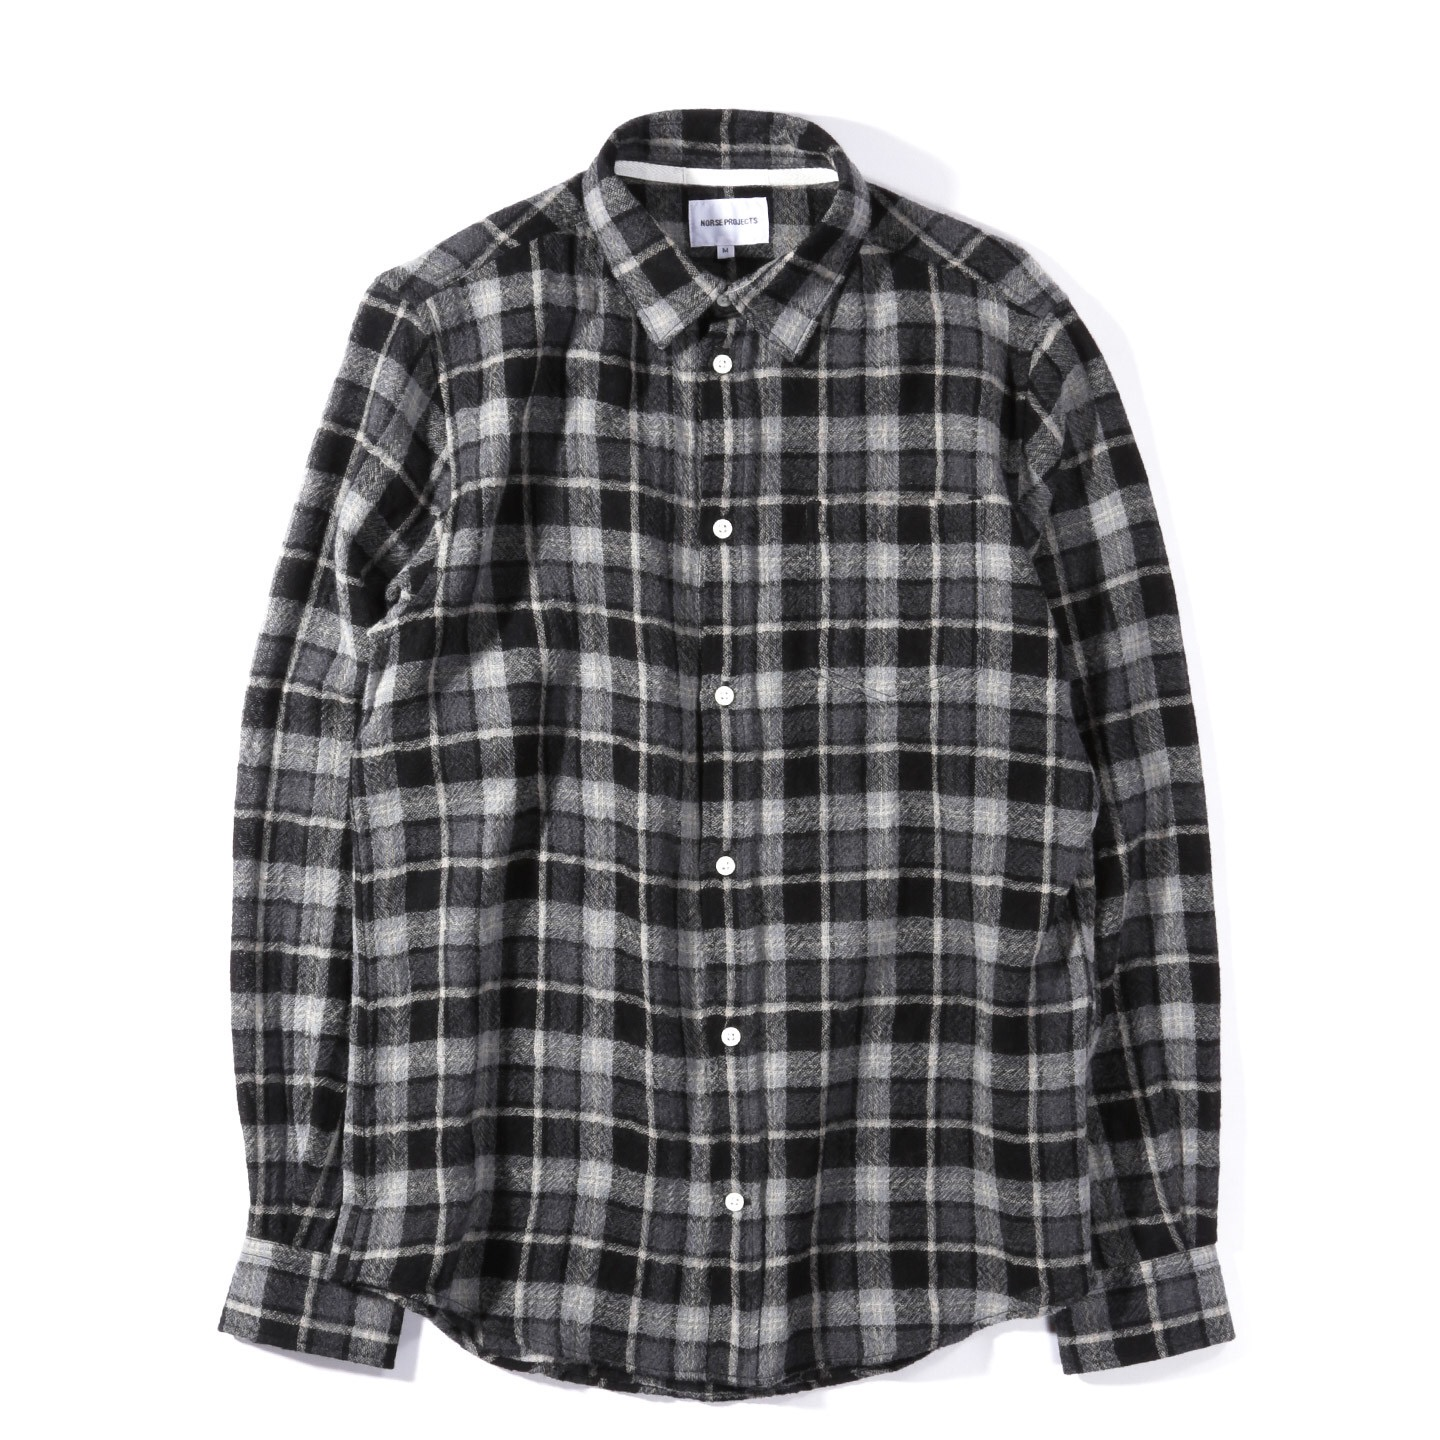 44b93db6a Norse Projects Anton Loose Weave Gauze Mouse Grey Flannel Button Shirt Size  l - Shirts (Button Ups) for Sale - Grailed